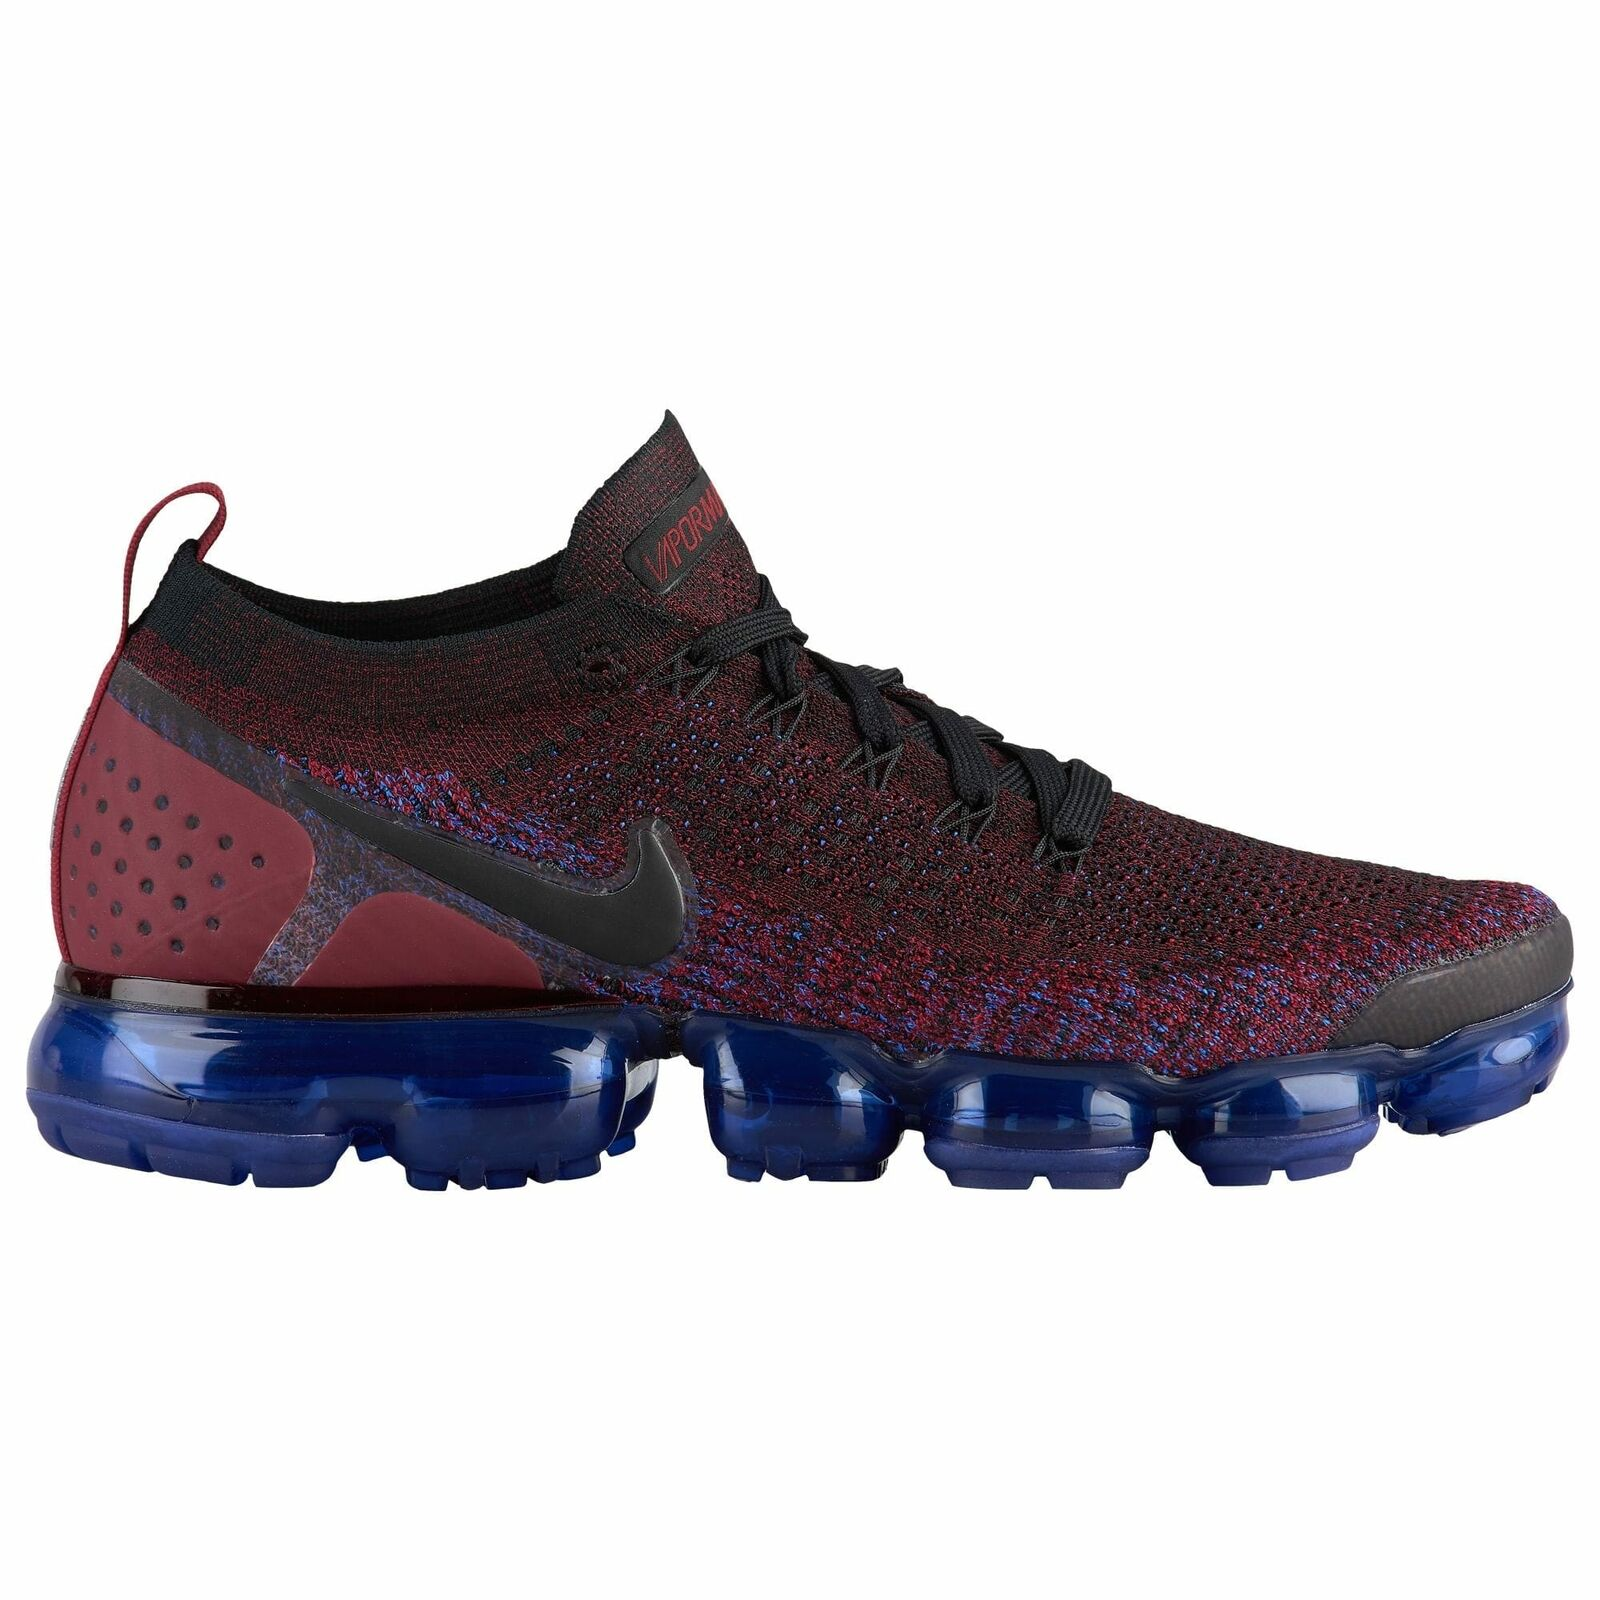 b364140eff Nike Air Vapormax Flyknit Men's Black Black Team Red Racer 42842006 2 bluee  nzuxzn5557-Athletic Shoes